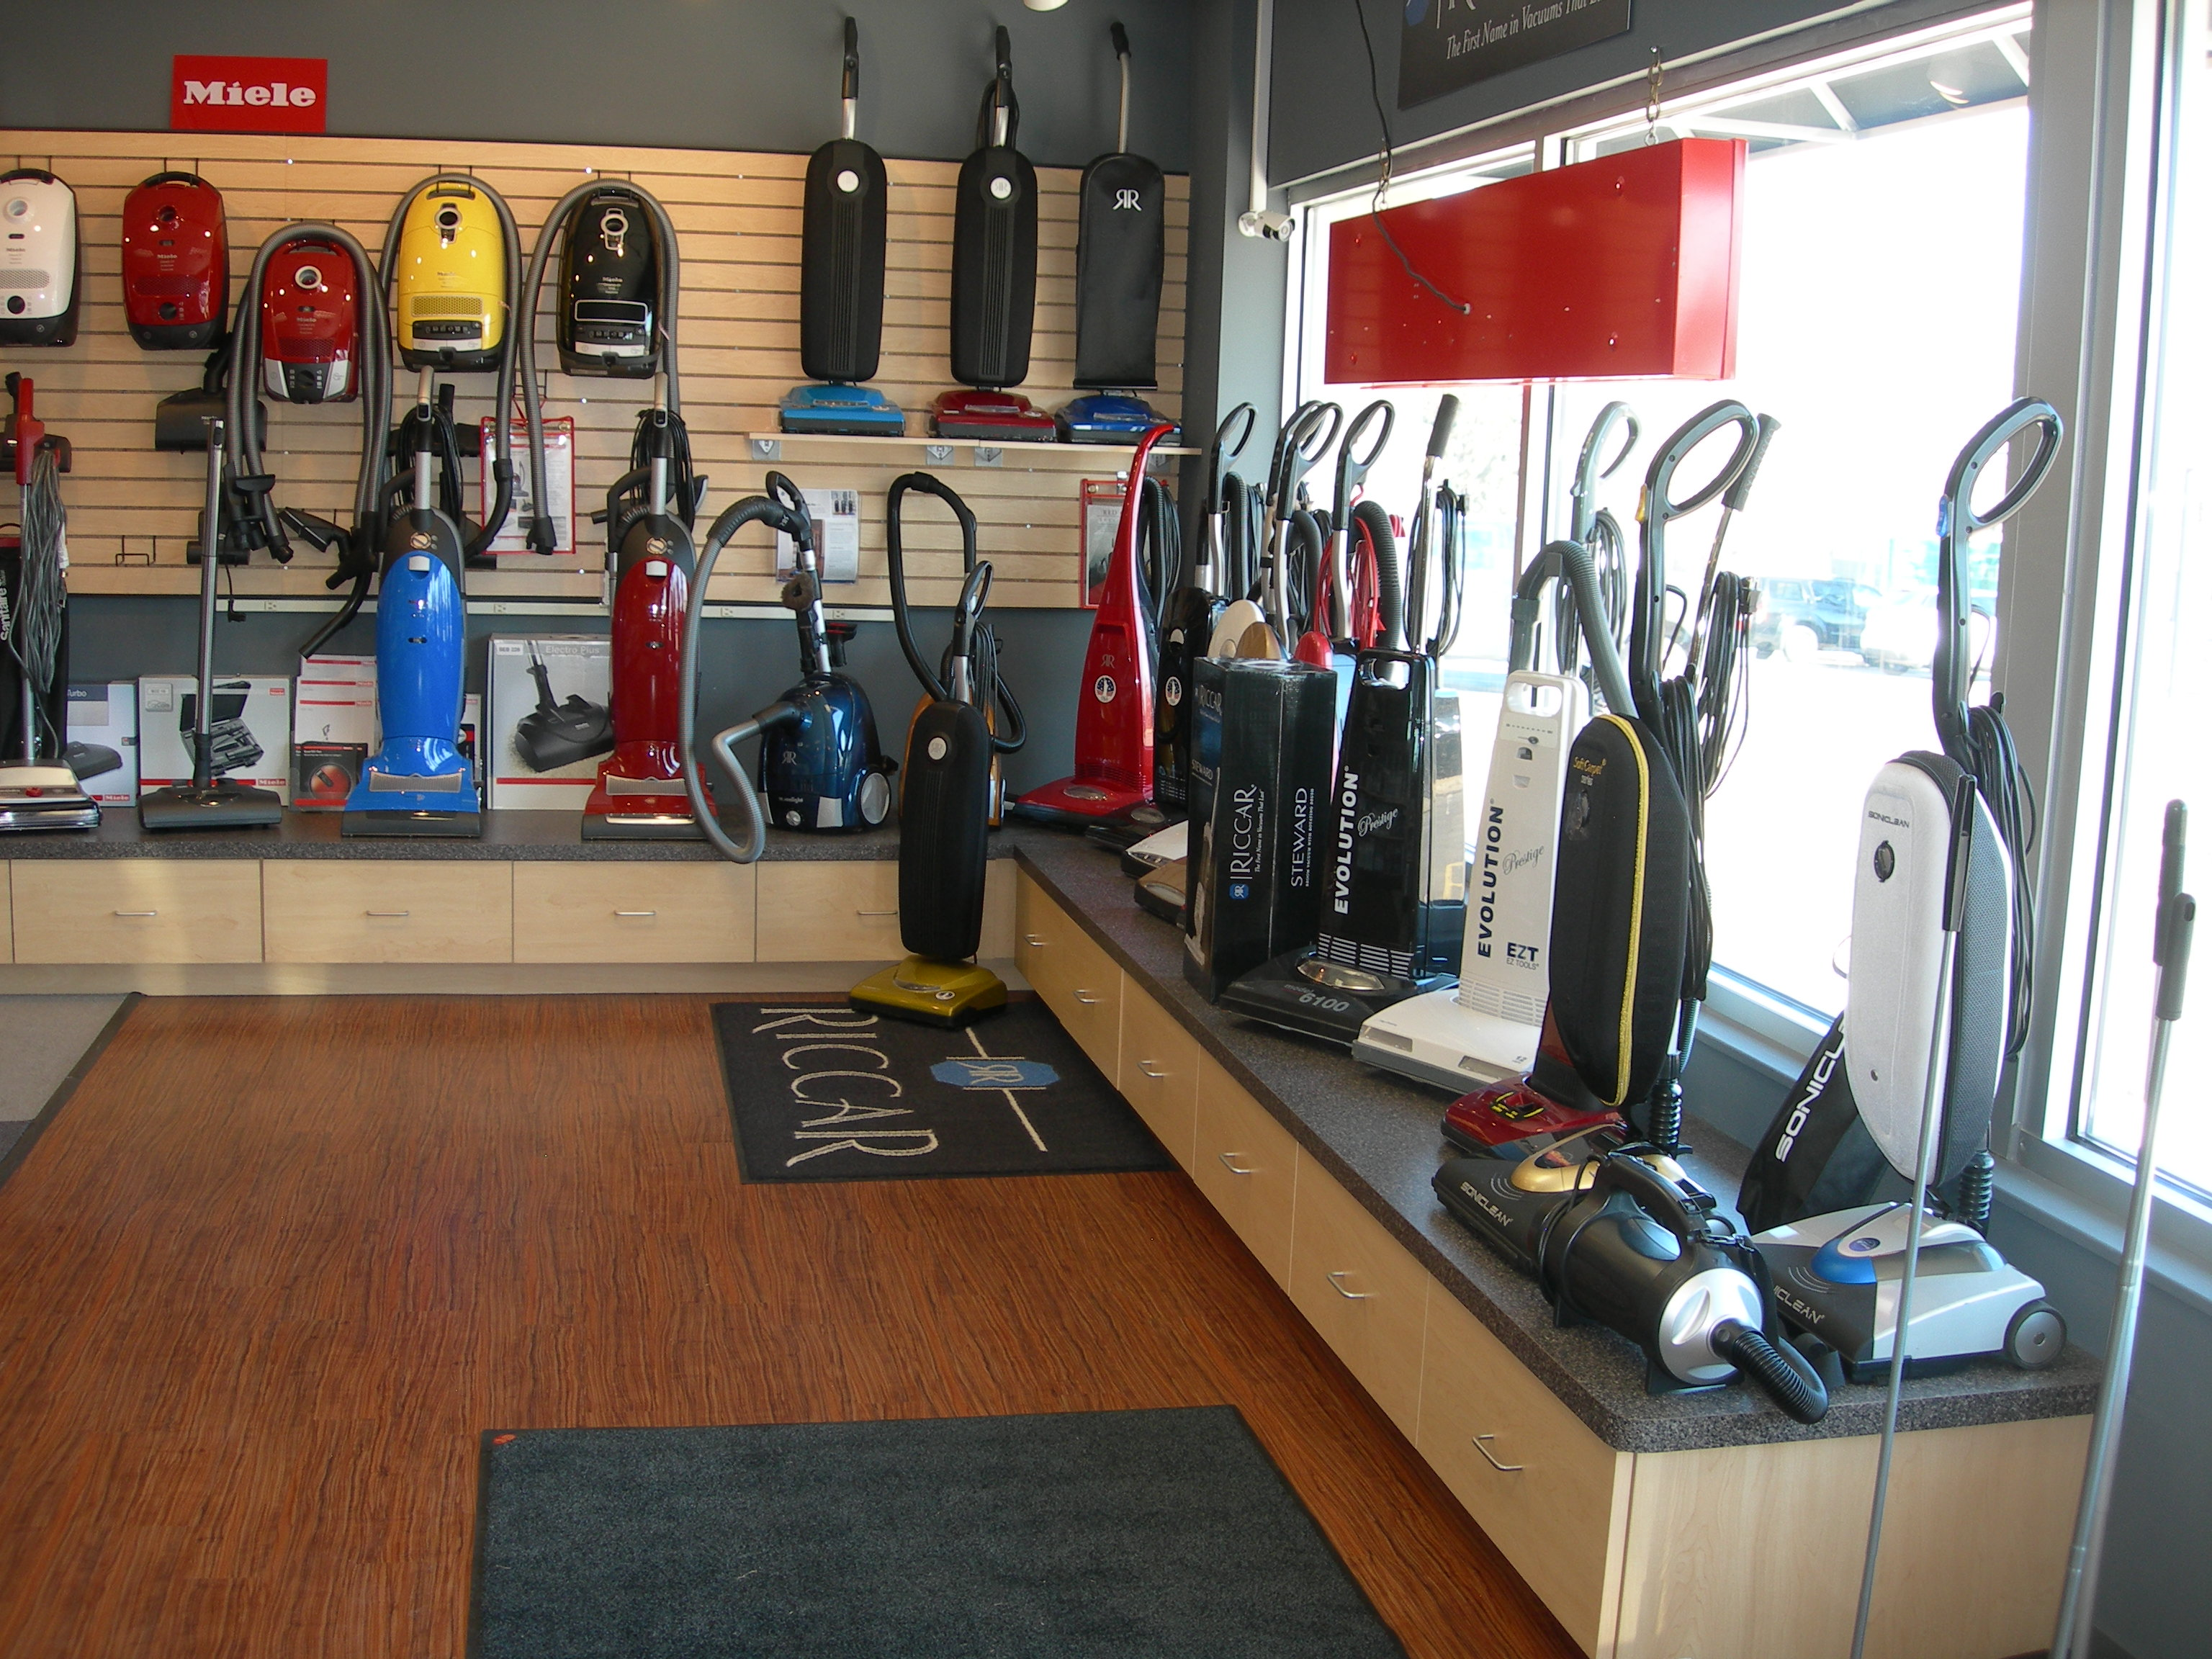 A-1 Vacuum Cleaner Company image 2